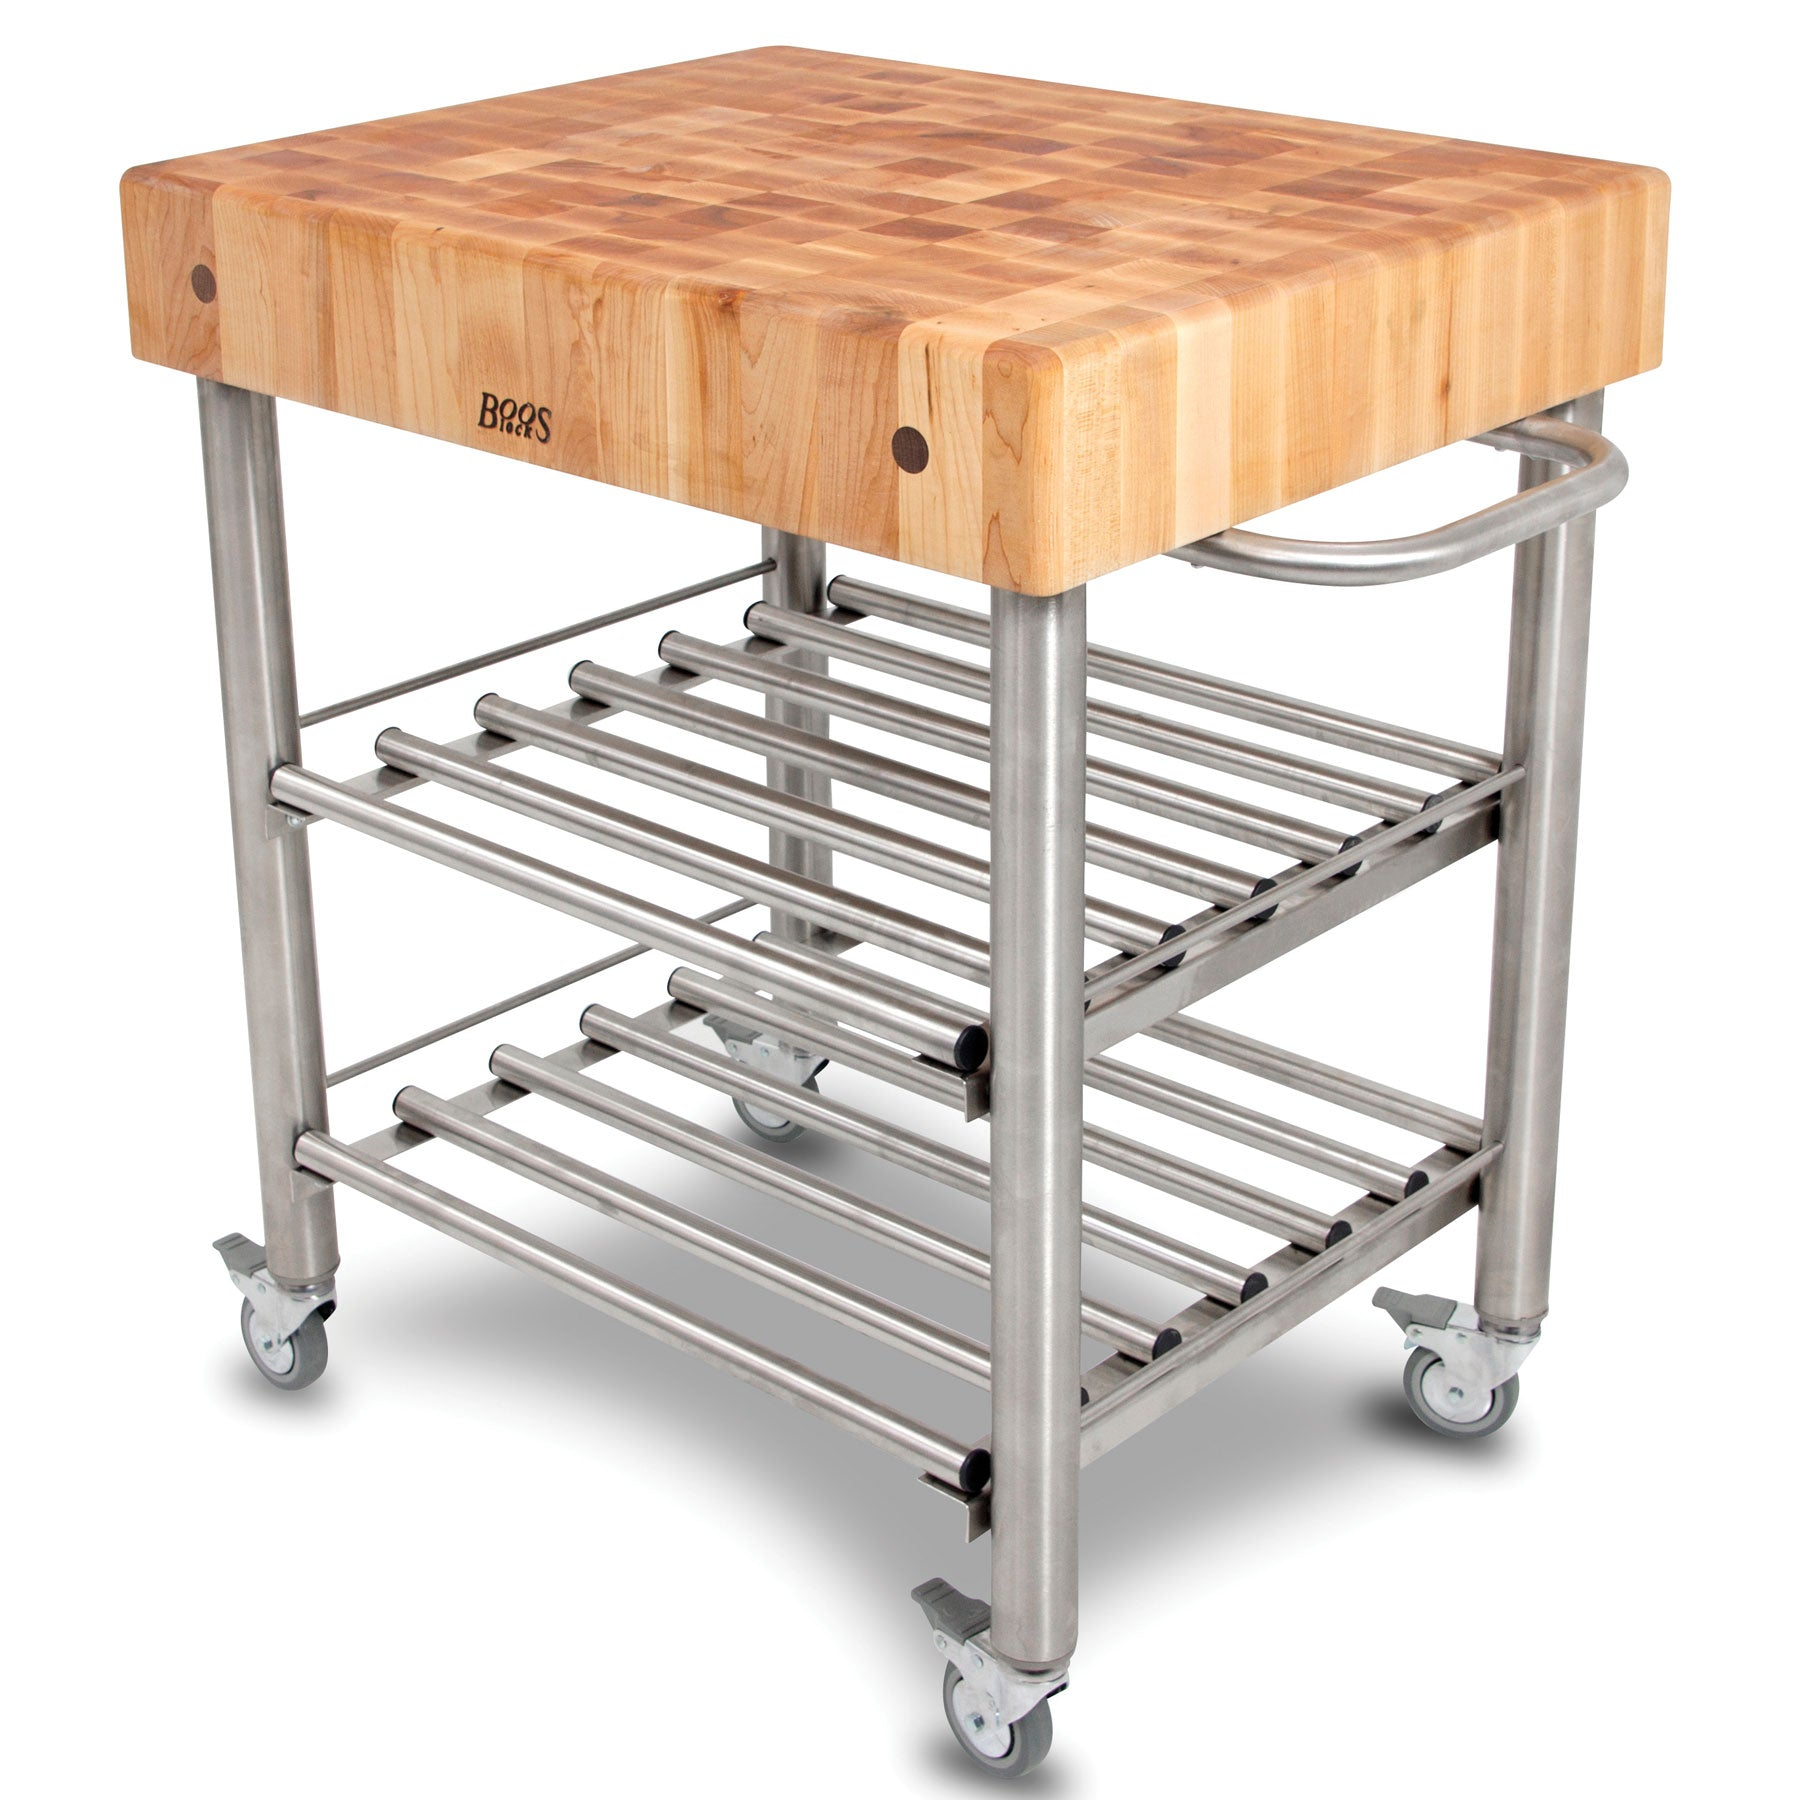 John Boos Maple Top Cucina D'Amico Wine Cart